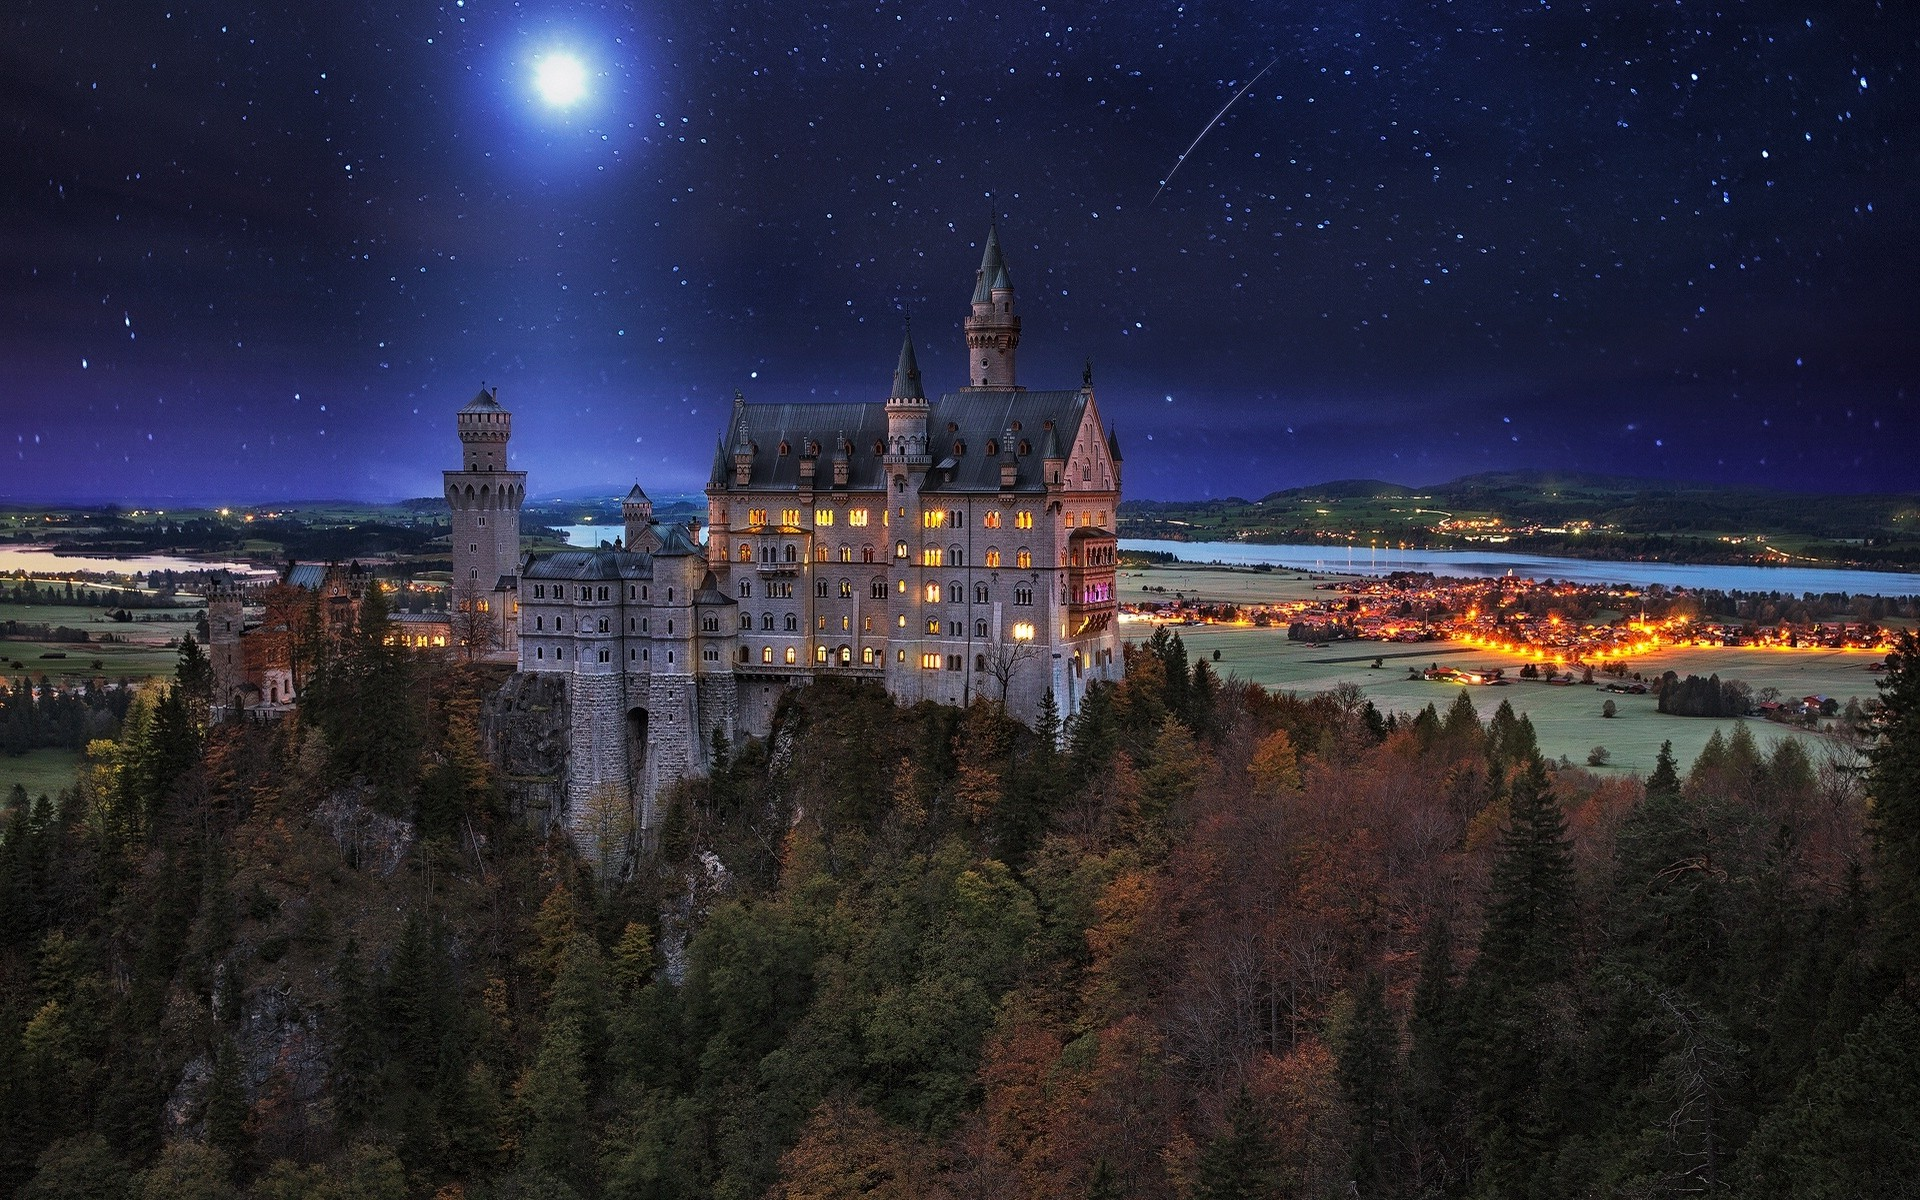 3d Christmas Wallpaper Backgrounds 2015 Landscape Nature Neuschwanstein Castle Germany Starry